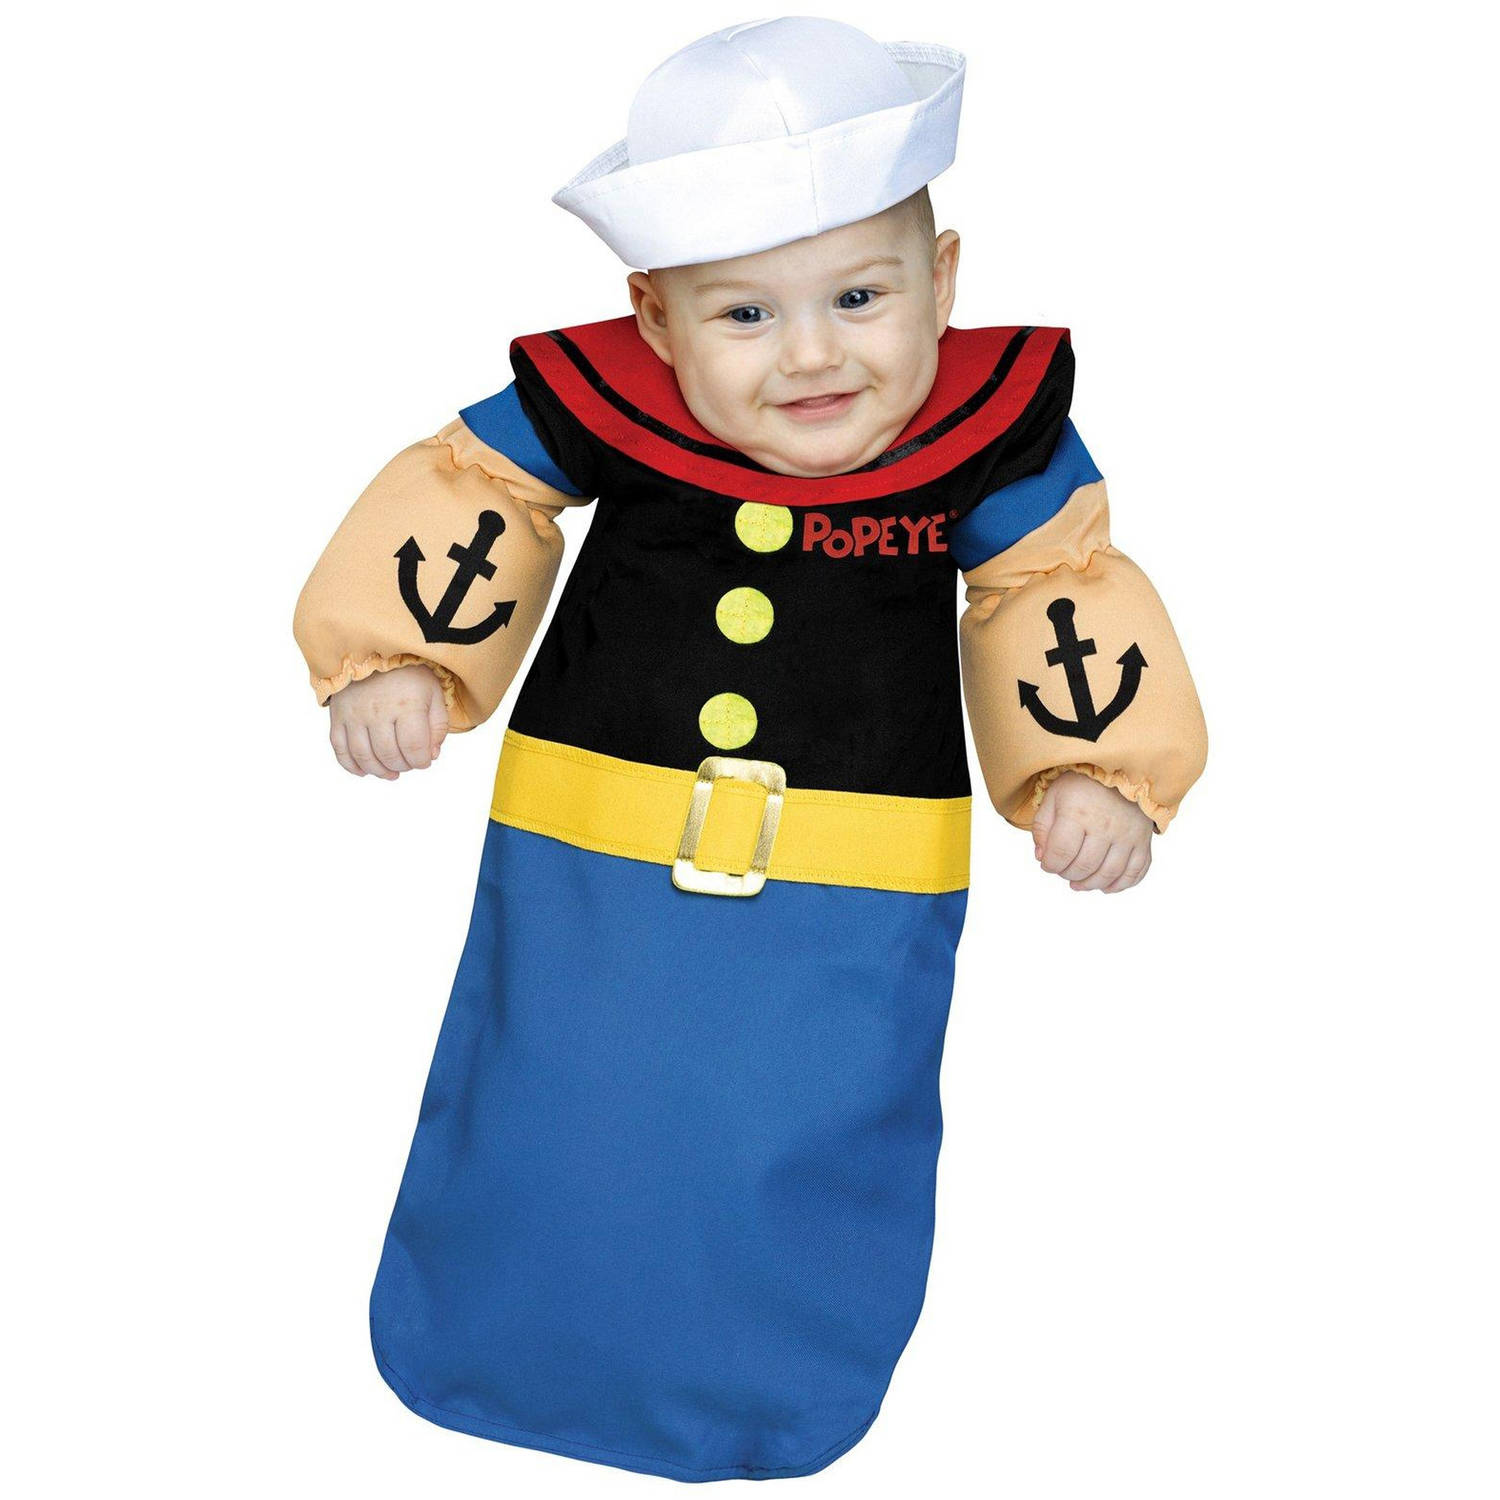 Popeye Baby Bunting Infant Halloween Costume, 6-12 Months